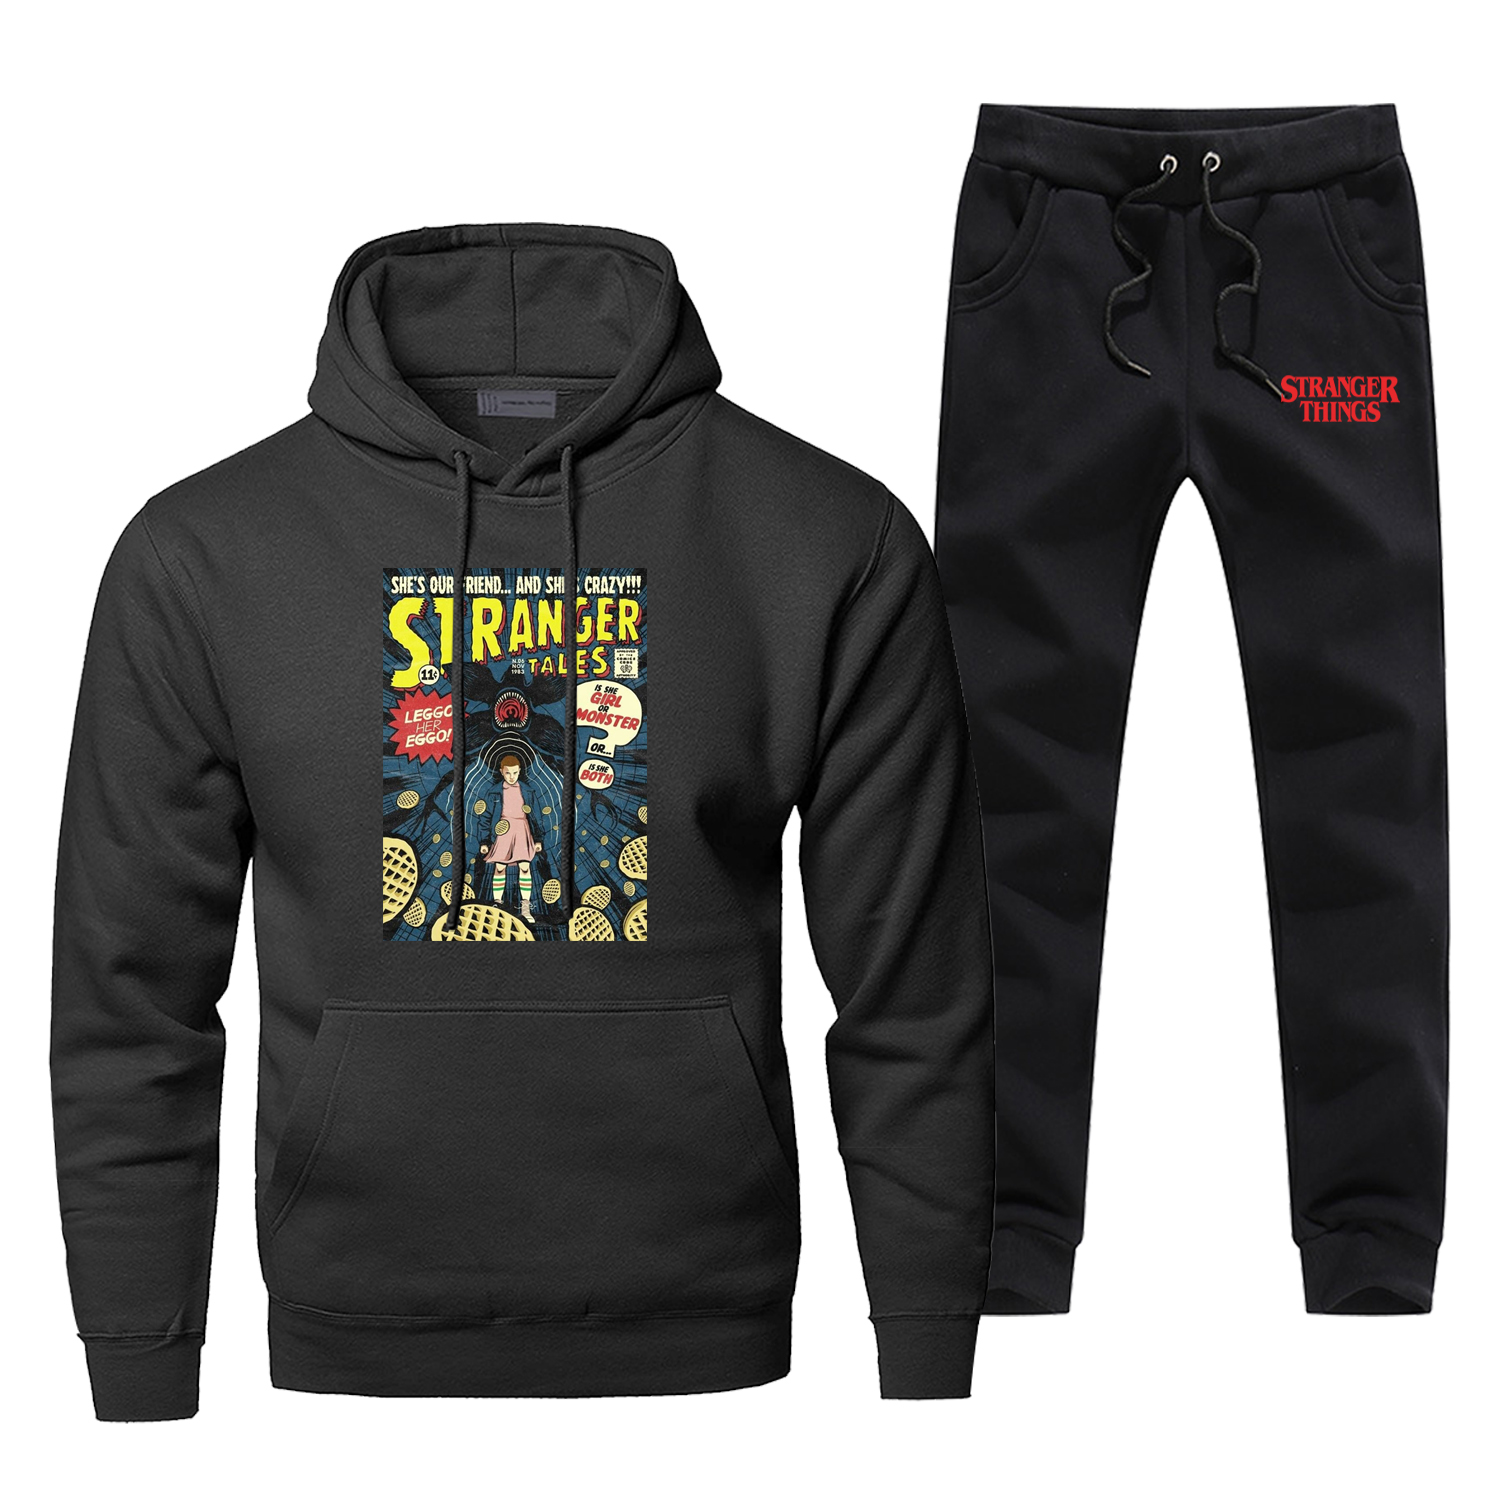 Stranger Things Hoodie Pants Set Men Horror Sweatshirt Male Hoodies Sweatshirts Mens Sets Two Piece Pant Pullover Hoody 2Pc Coat